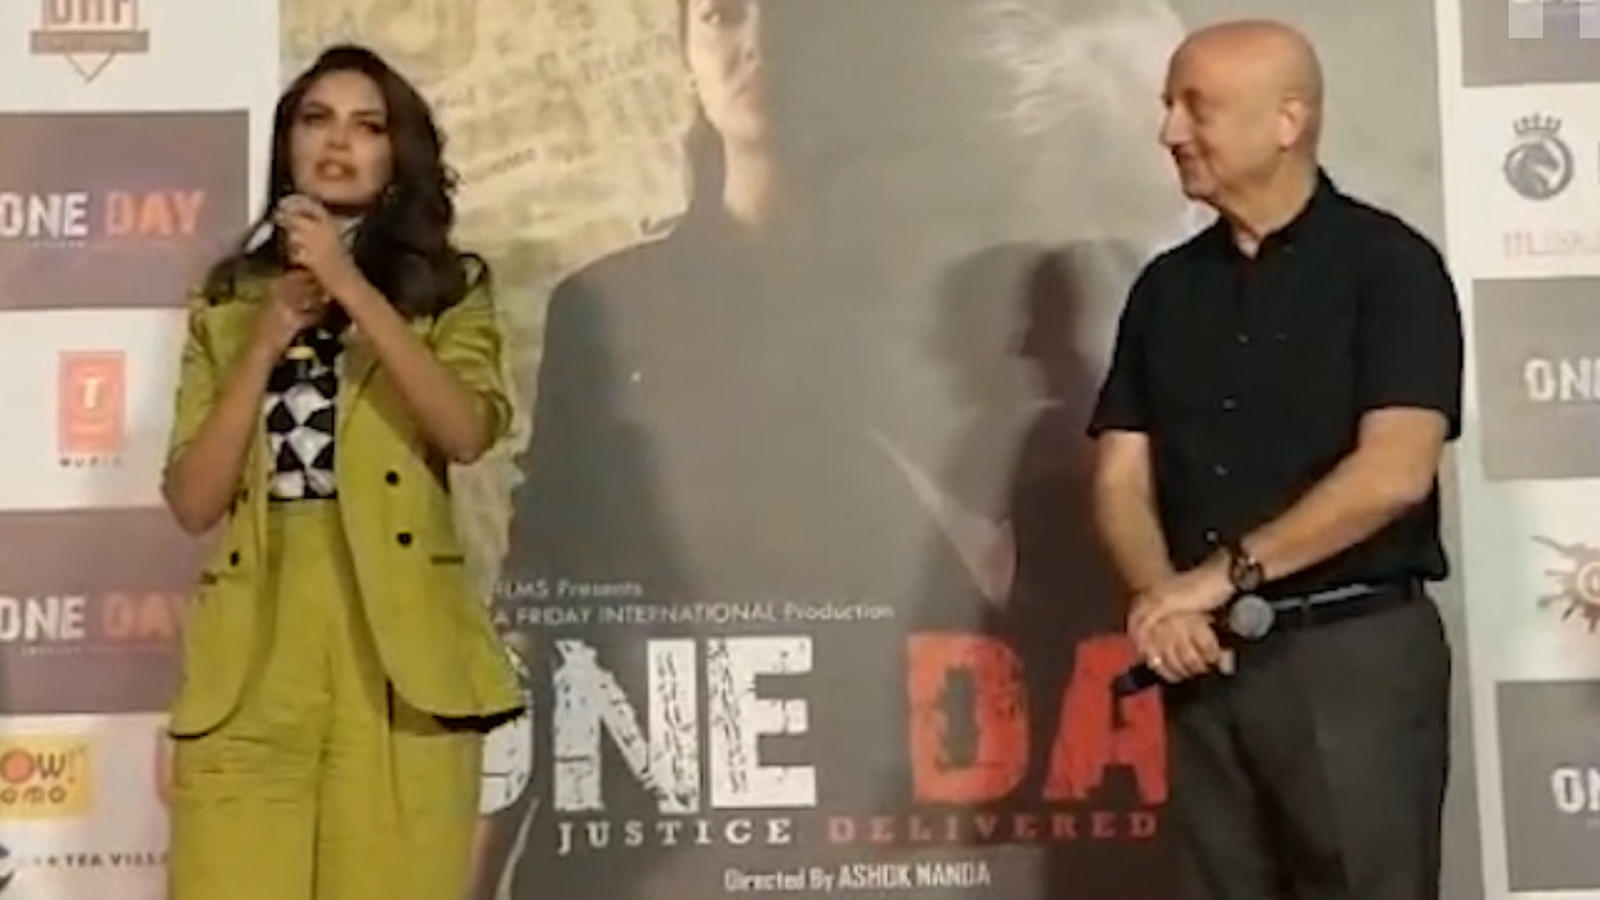 trailer-launch-of-anupam-kher-esha-gupta-starrer-one-day-justice-delivered